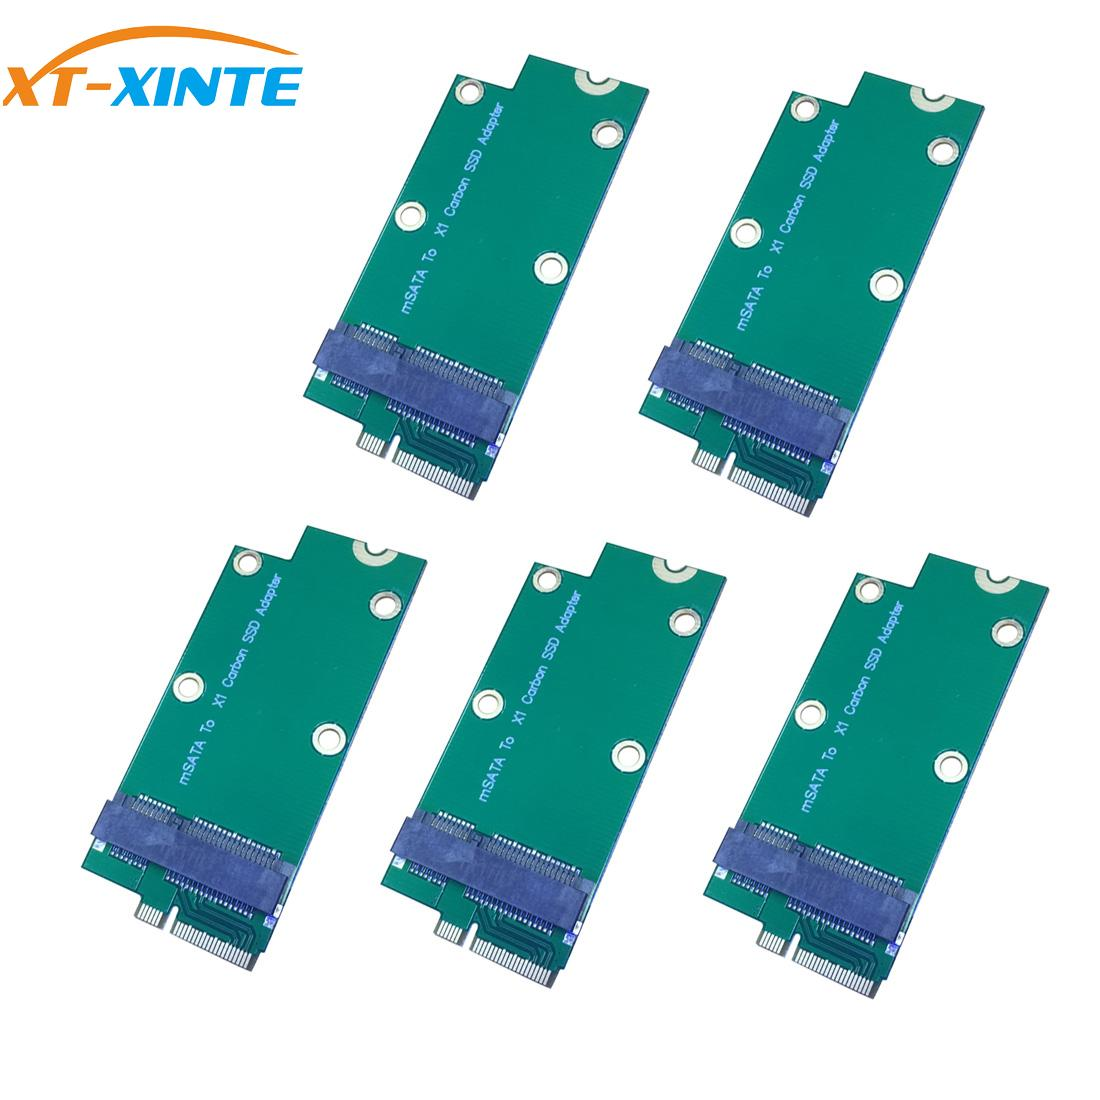 XT-XINTE 5pcs Mini PCI-E MSATA SSD To Sandisk SD5SG2 Add On Card For Lenovo X1 Carbon For Ultrabook SSD Connector Expansion